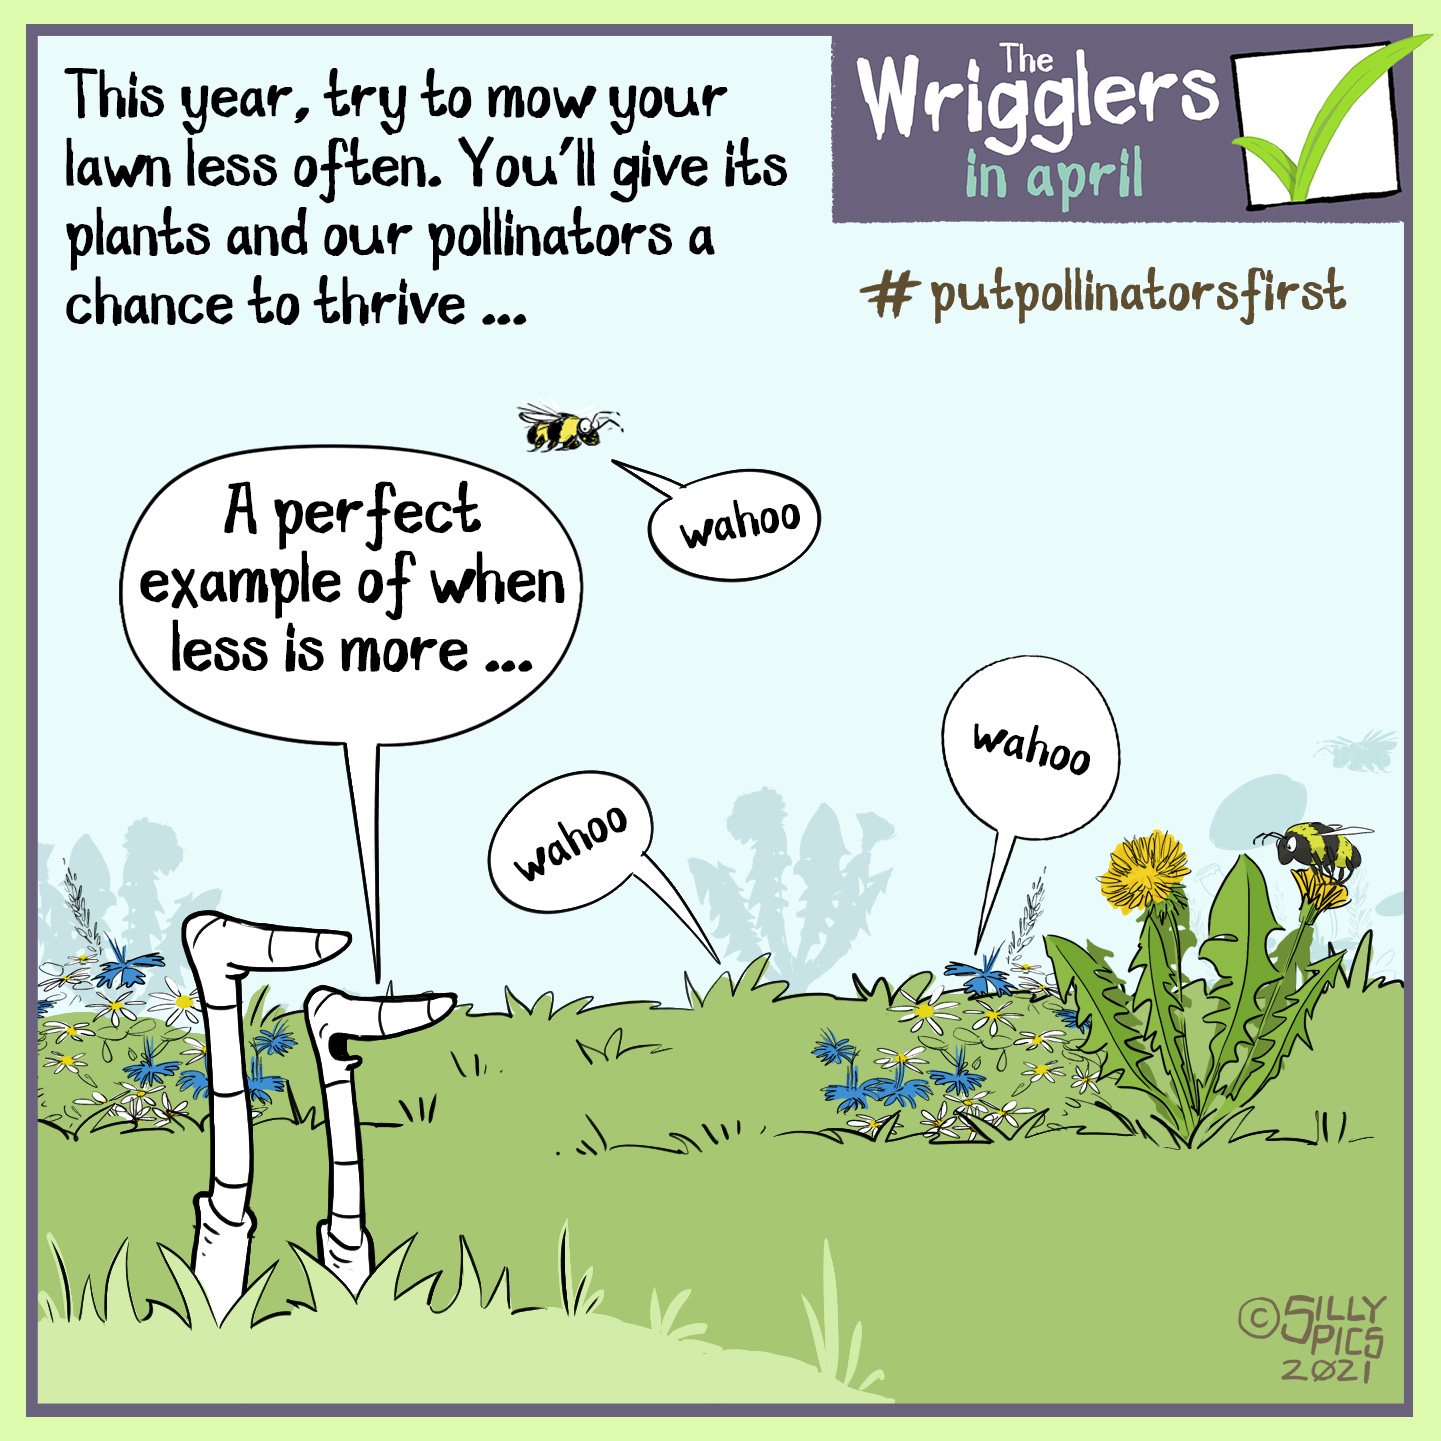 """#pupollinatorsfirst cartoon about mowing your lawn. The cartoon says: This year try to mow our lawn less often. You'll give its plants and pollinators a chance to thrive. The image is of two worms looking at a thriving garden, plants in the lawn, like dandelions, with insects and pollinators all shouting 'Wahoo"""". Two worms are talking, one says, """"A perfect example of when less is more"""""""